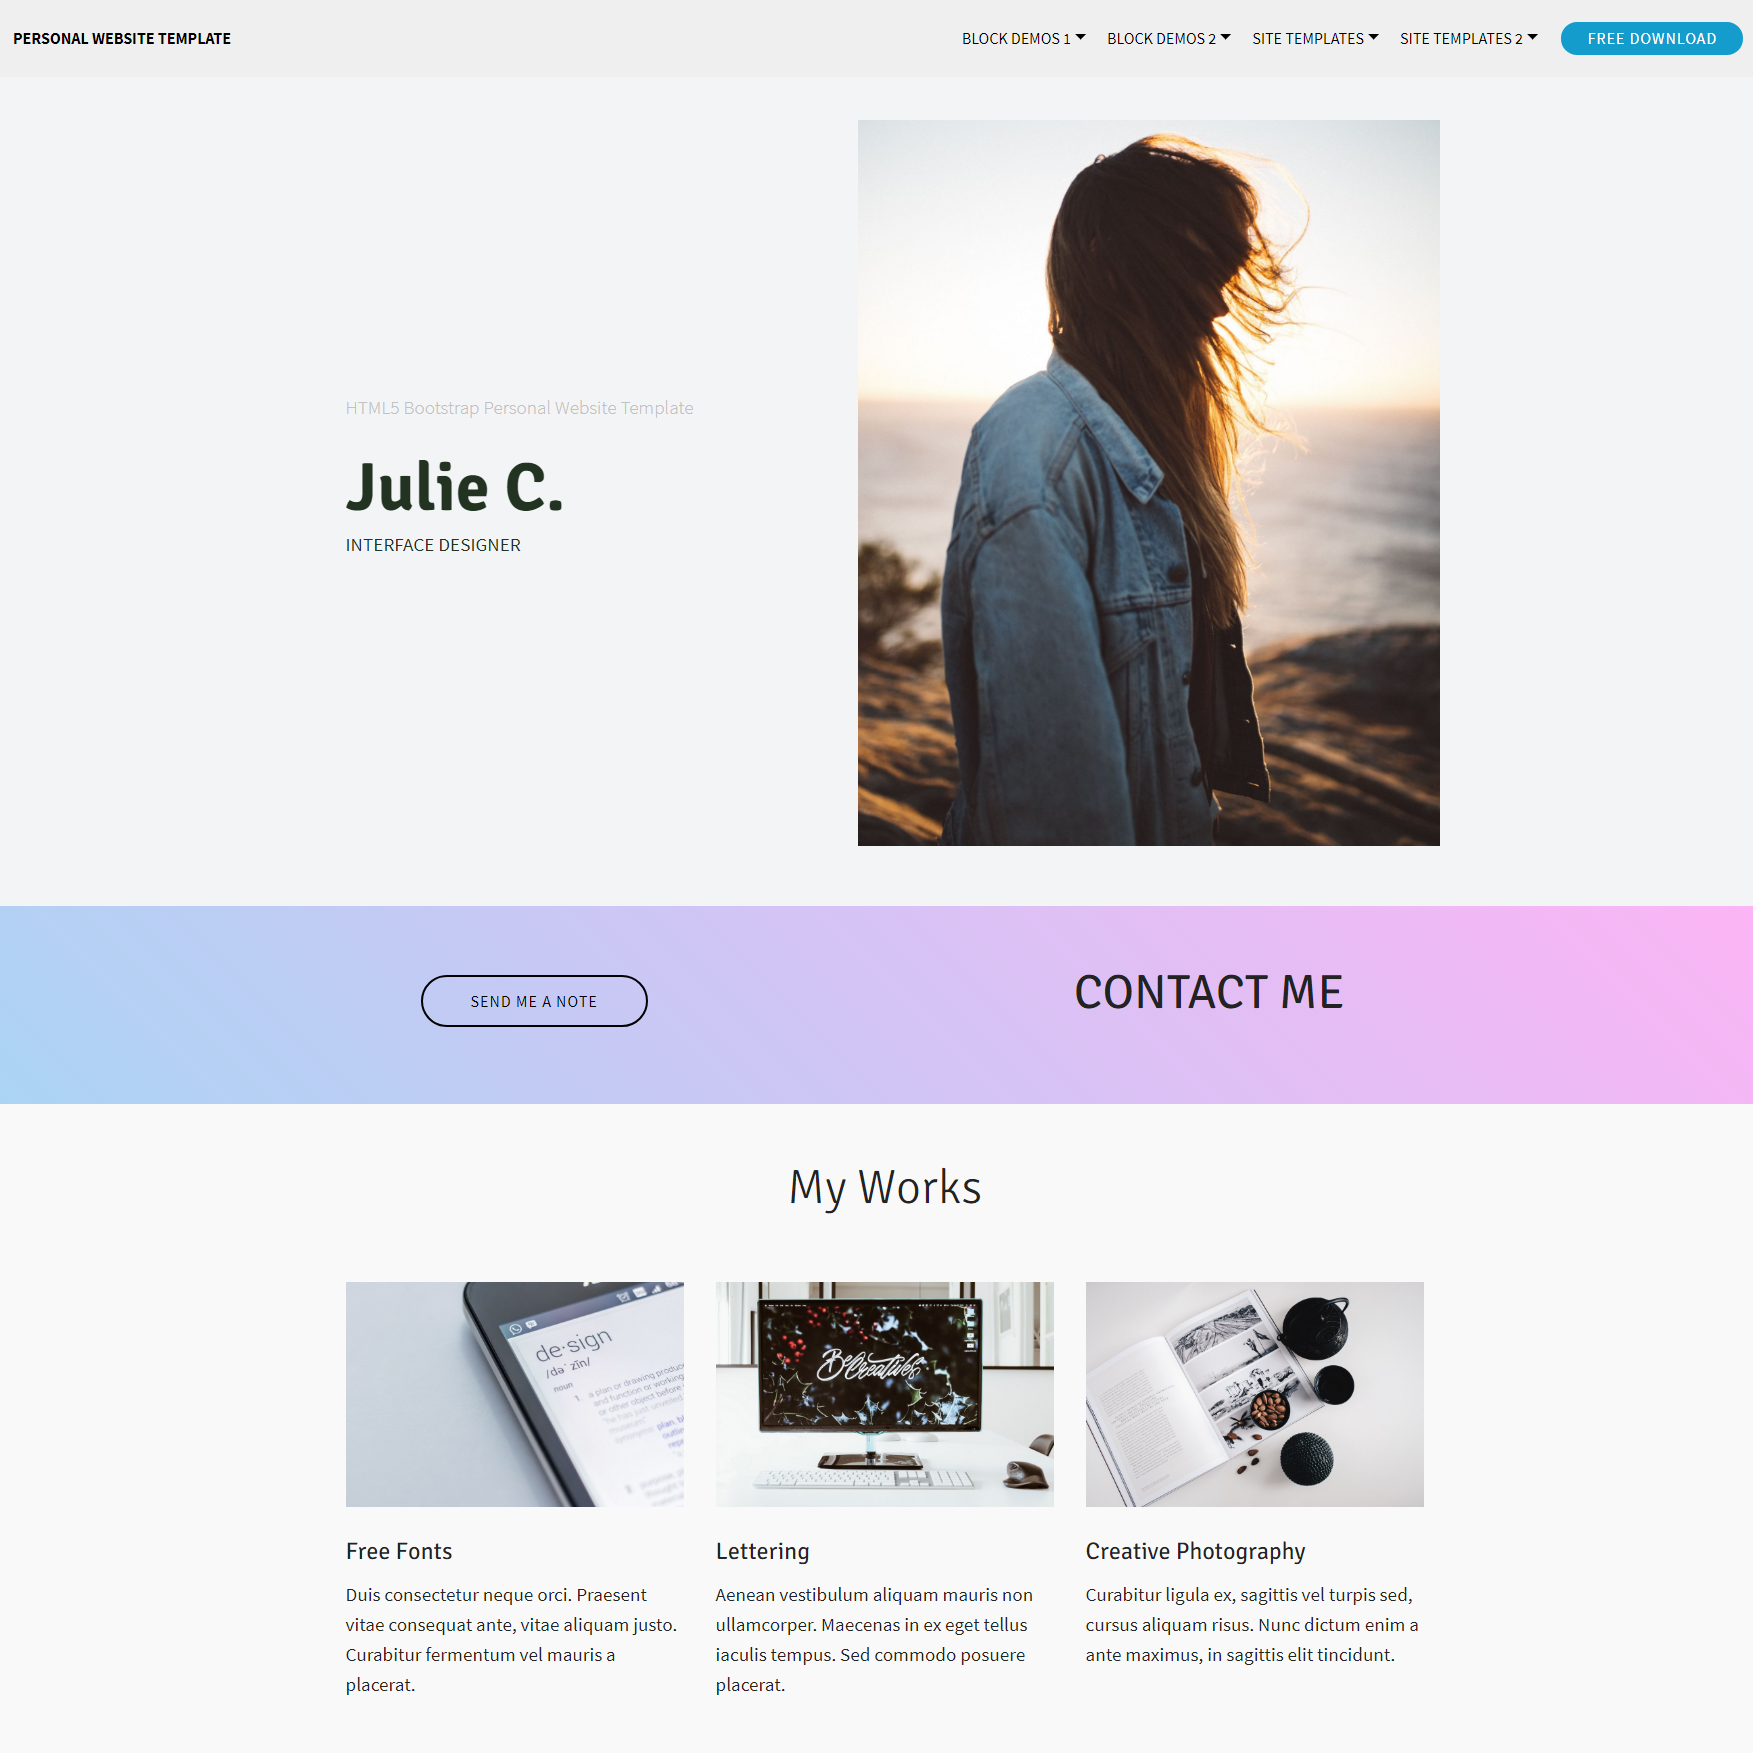 HTML5 Bootstrap Personal Website Templates